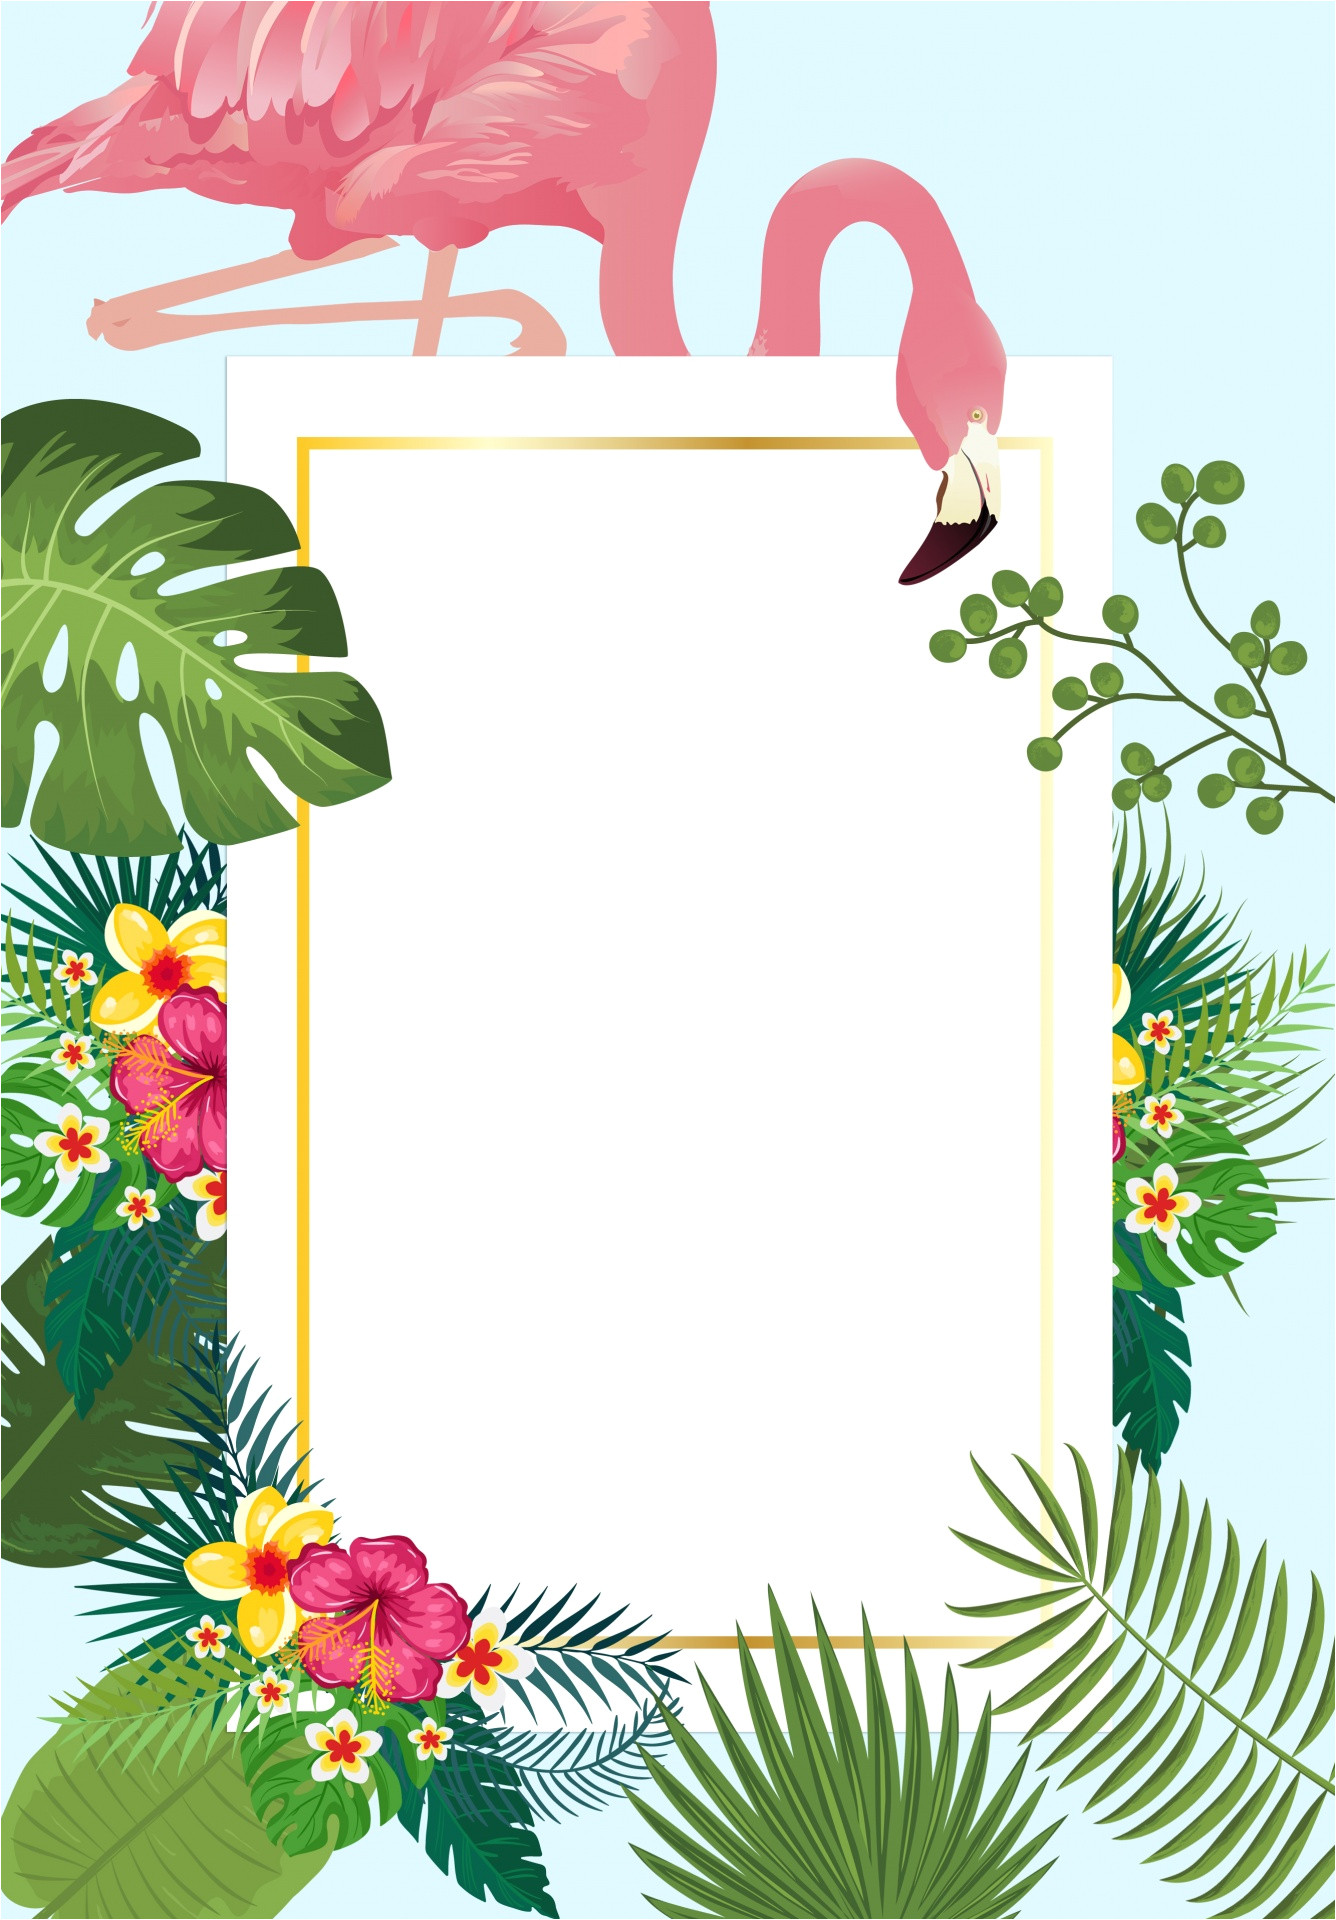 view image image 263891 picture flamingo tropical invitation card